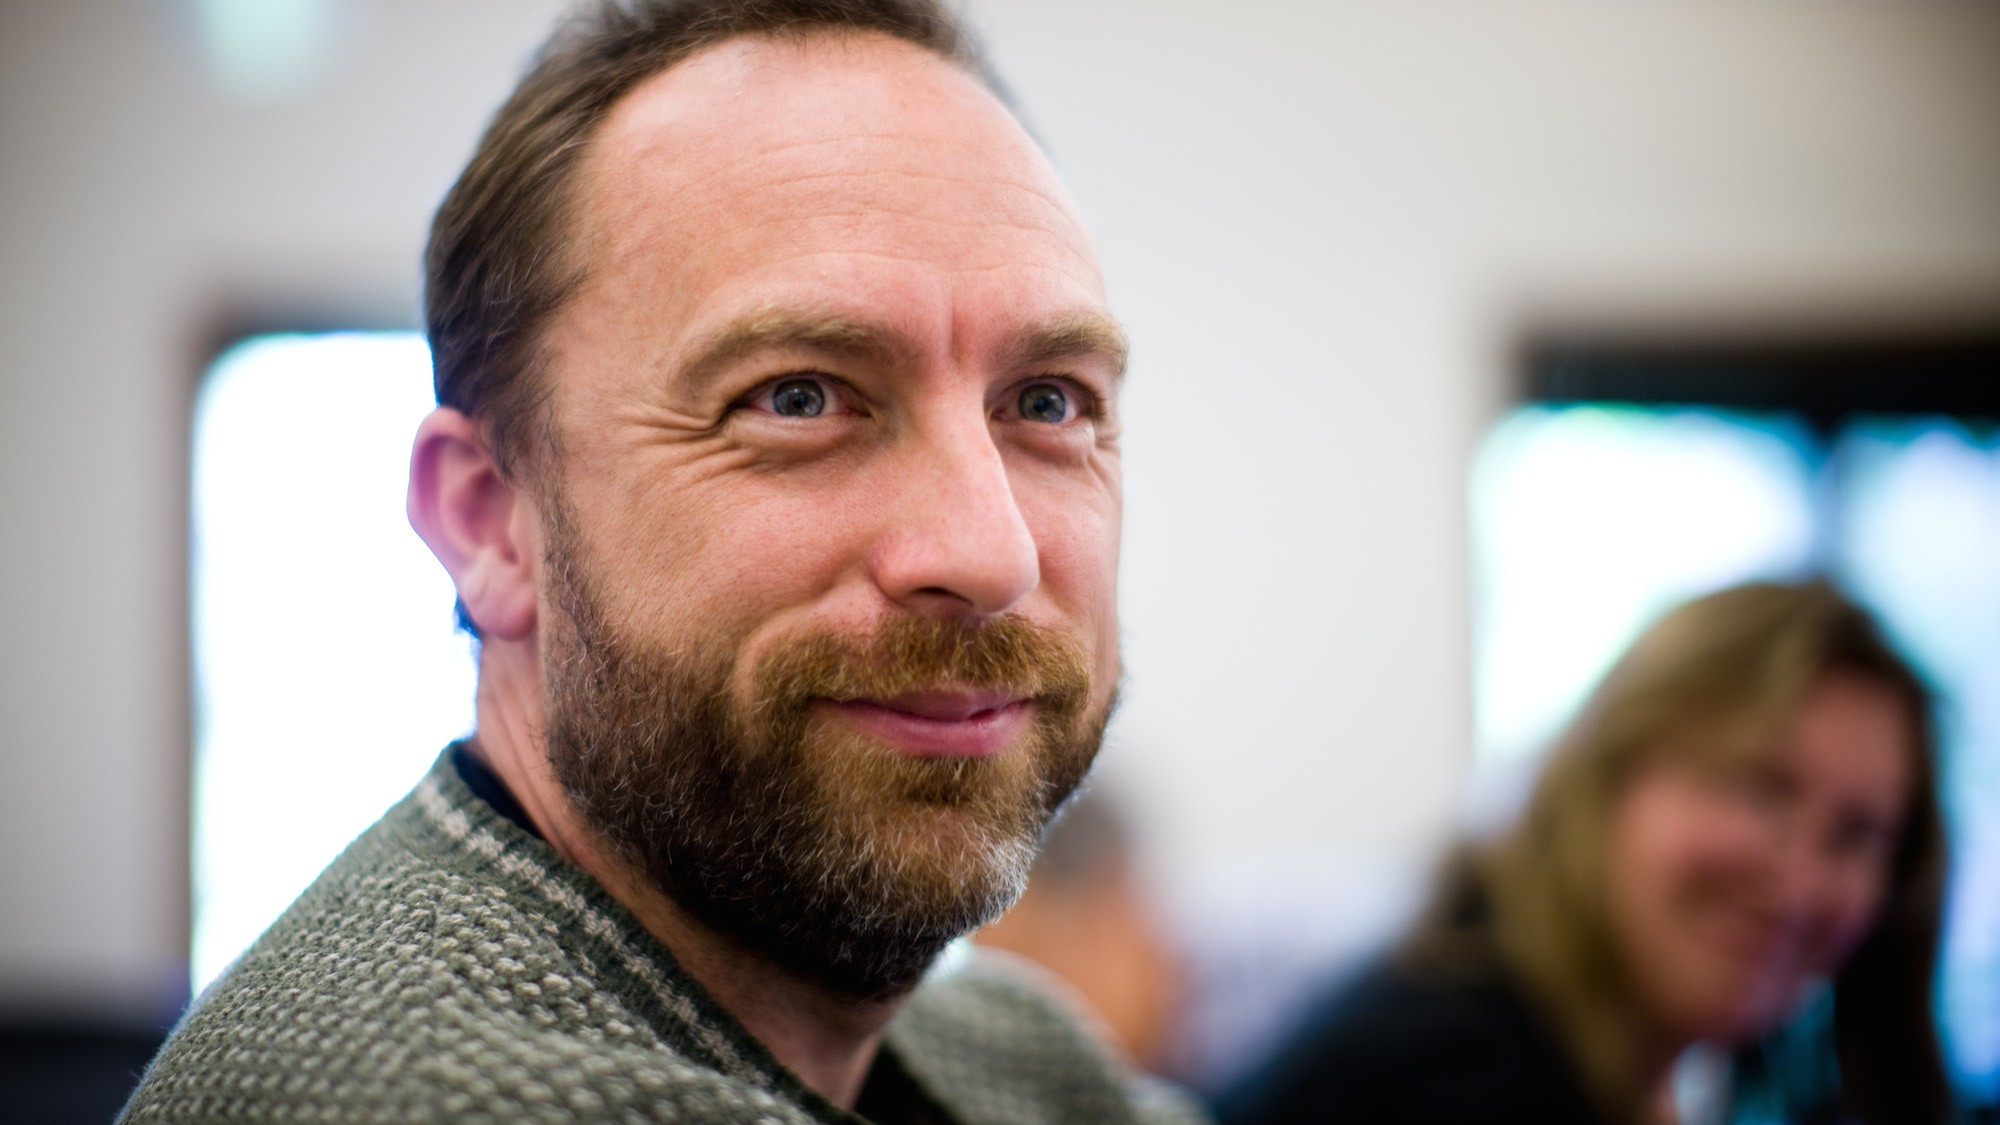 We Asked Jimmy Wales Why His Social Network Is Better Than Twitter